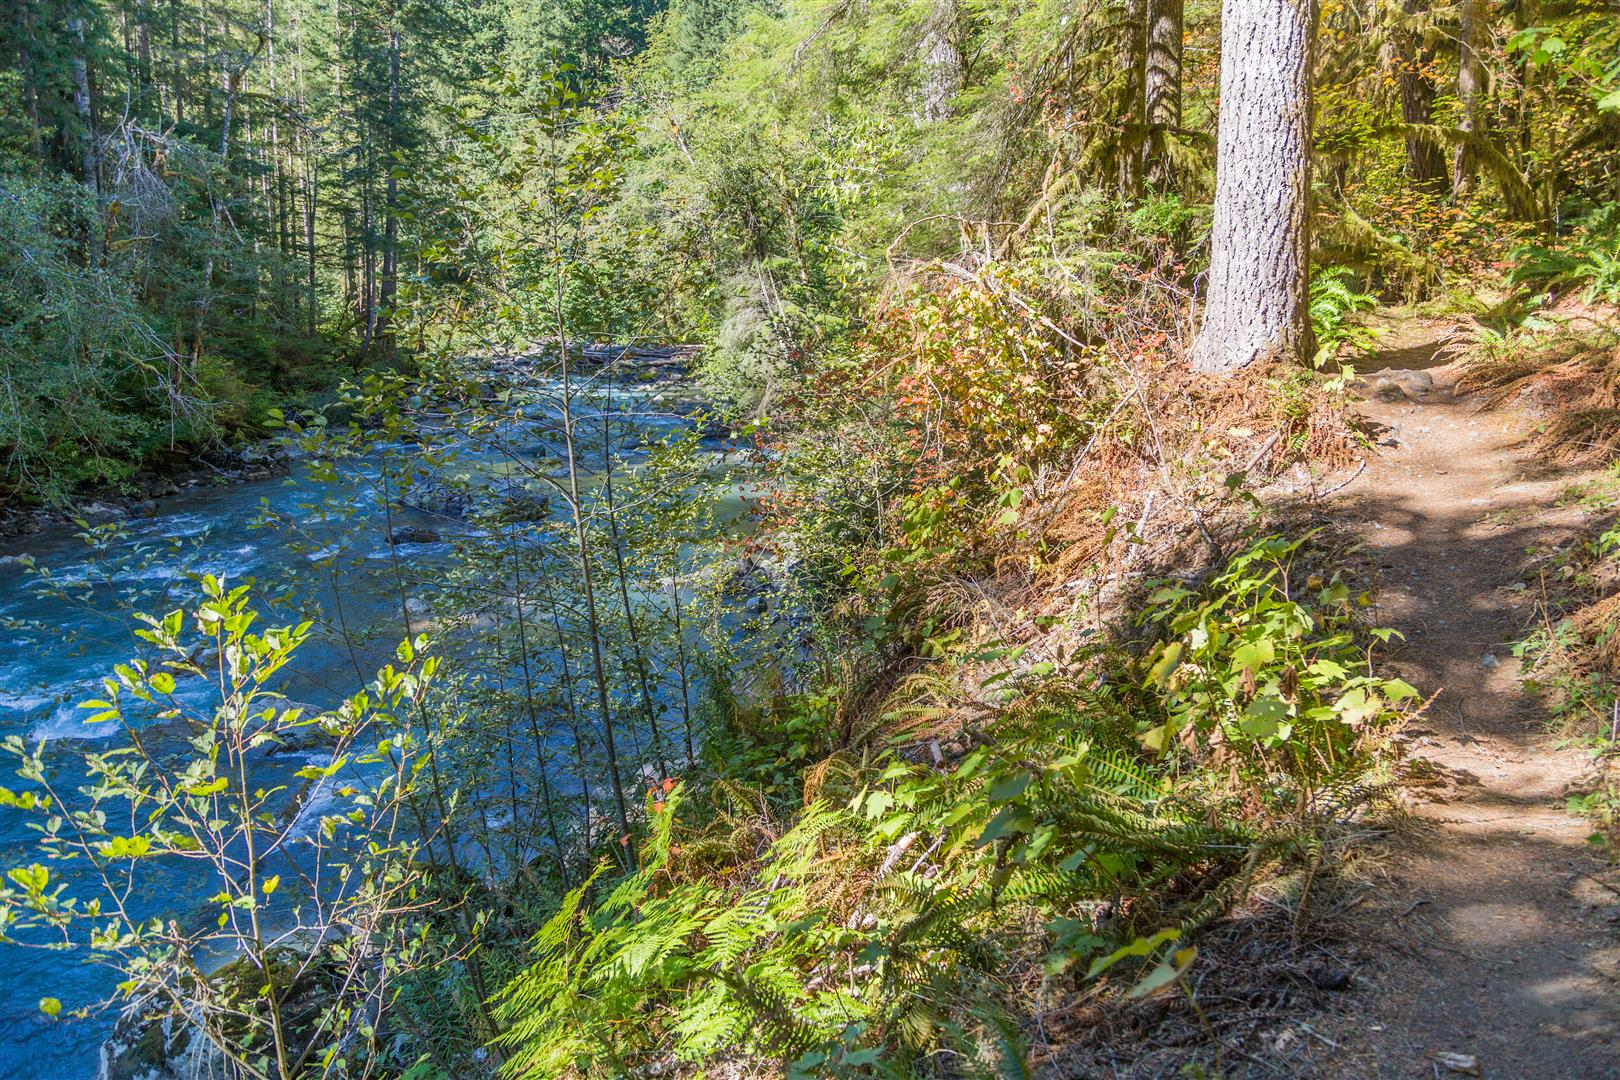 Nooksack River and trail